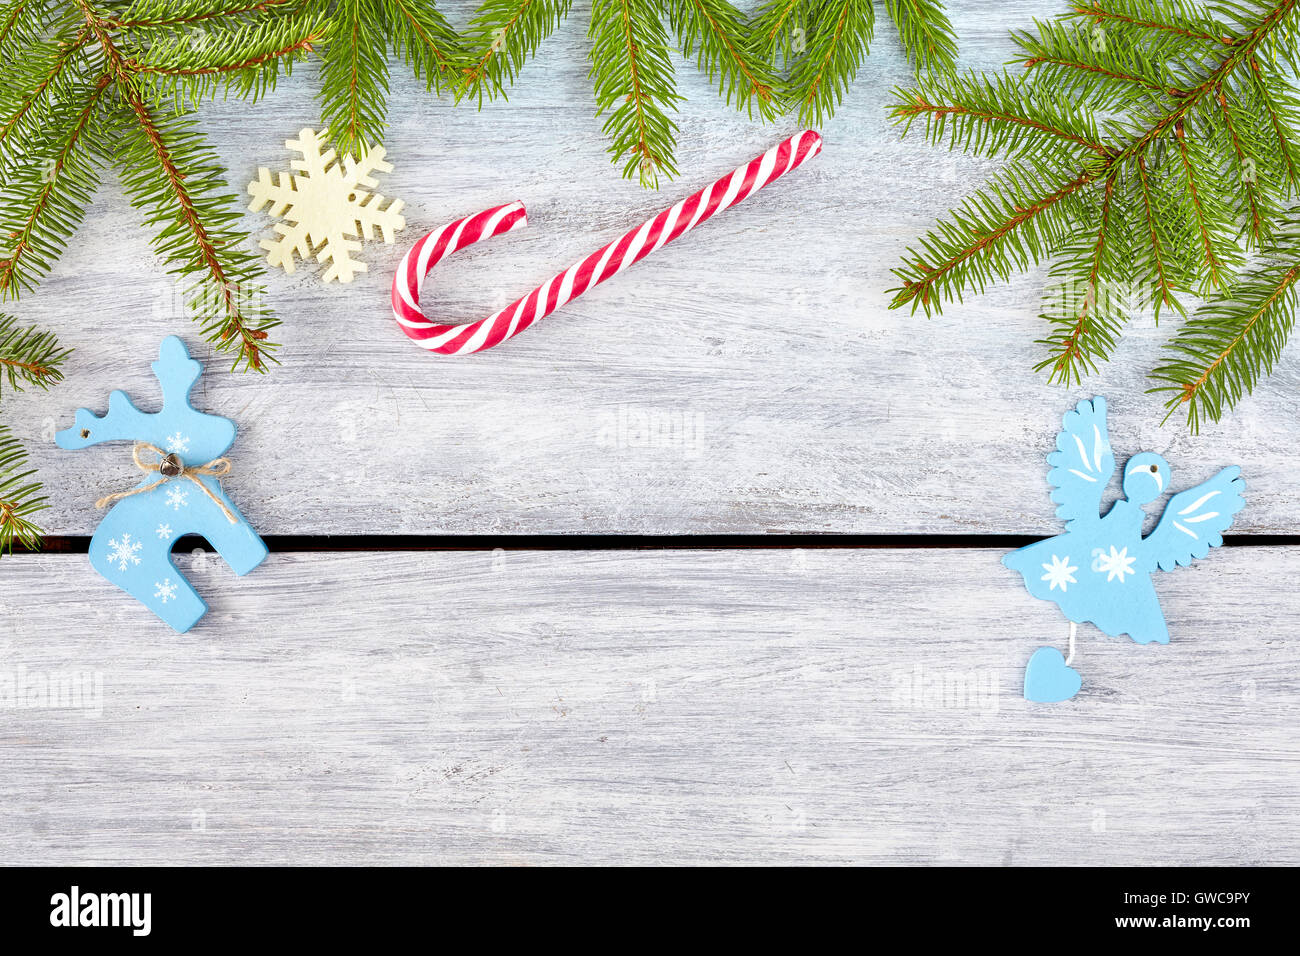 Christmas background, spruce branches with decorations on a rustic wooden table, top view with copy space. - Stock Image